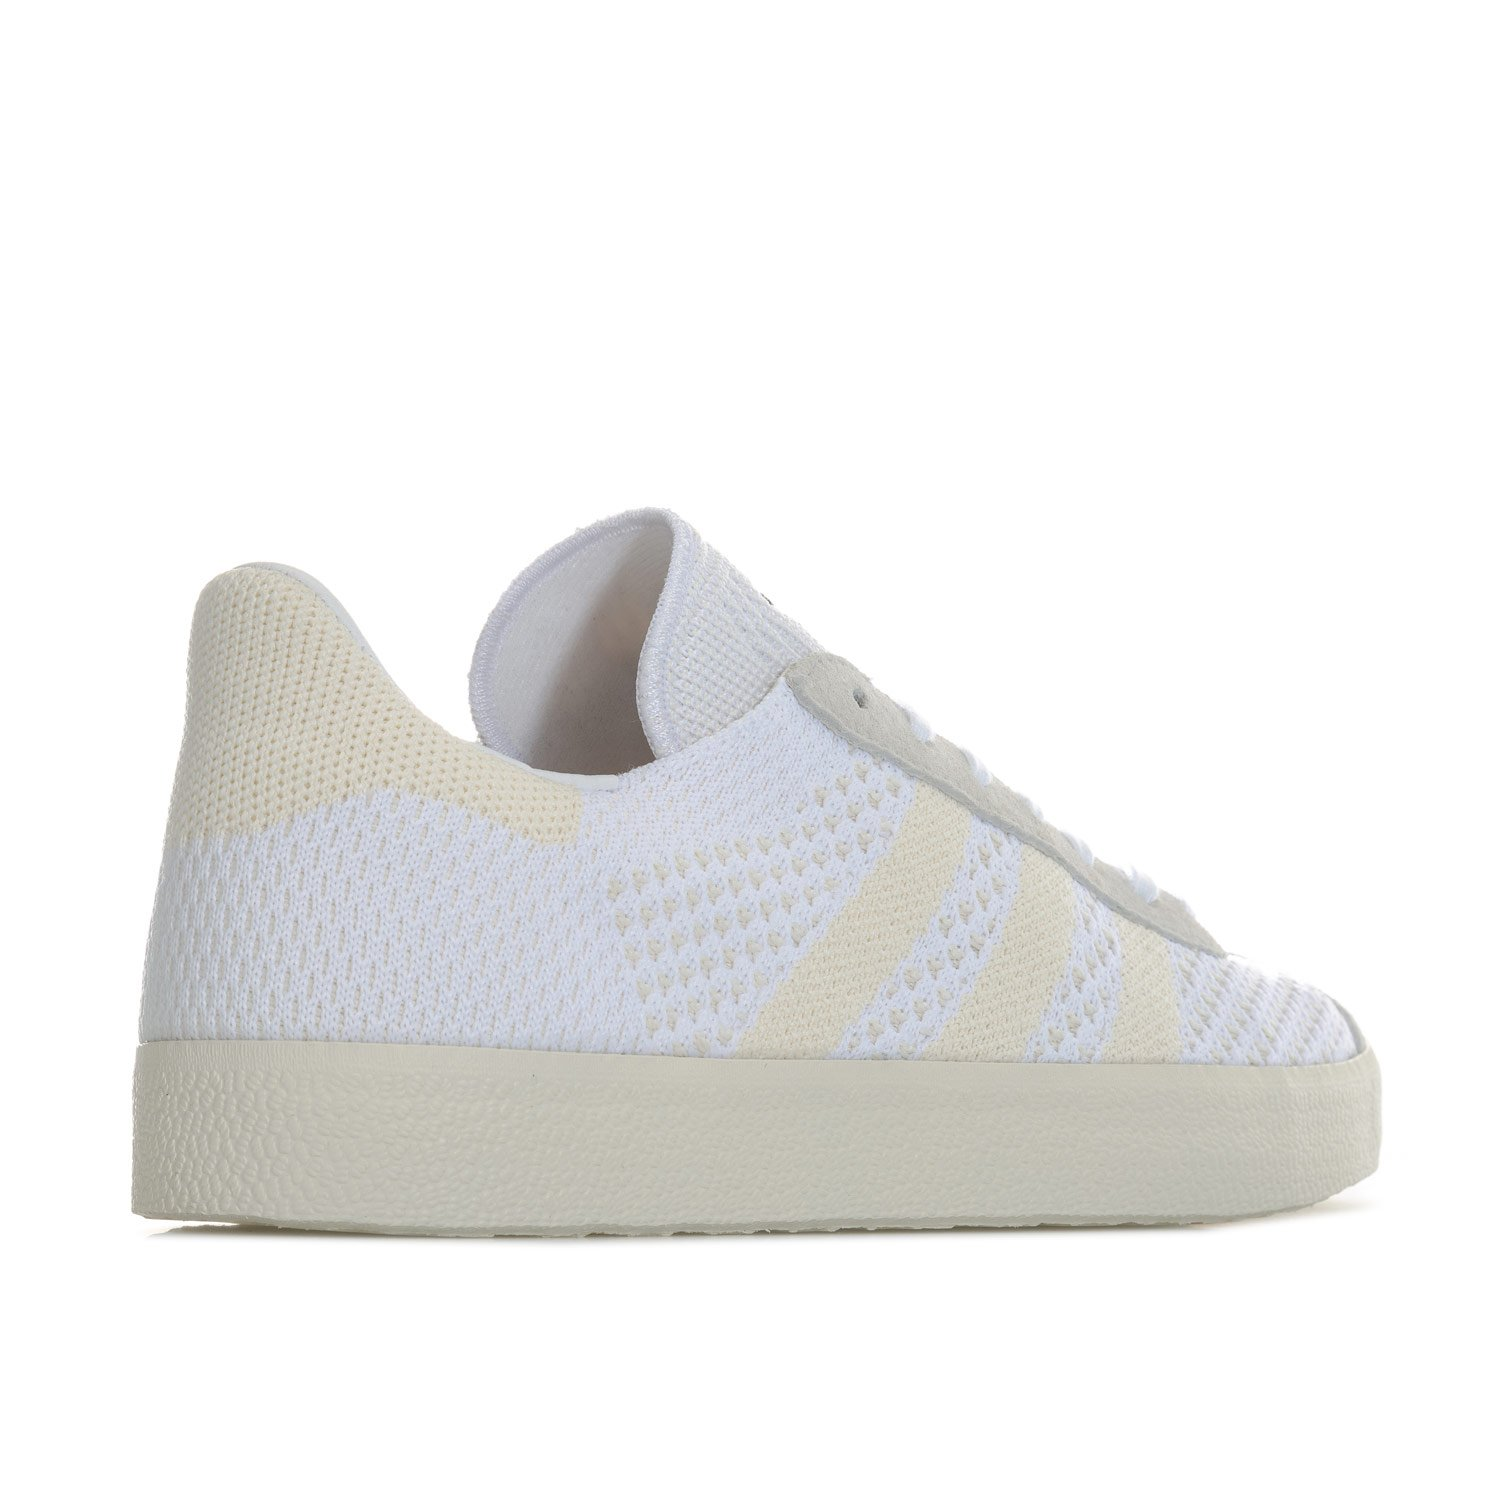 new arrival eb2f3 e5354 adidas Menss Gazelle Primeknit Low-Top Sneakers Amazon.co.uk Shoes   Bags